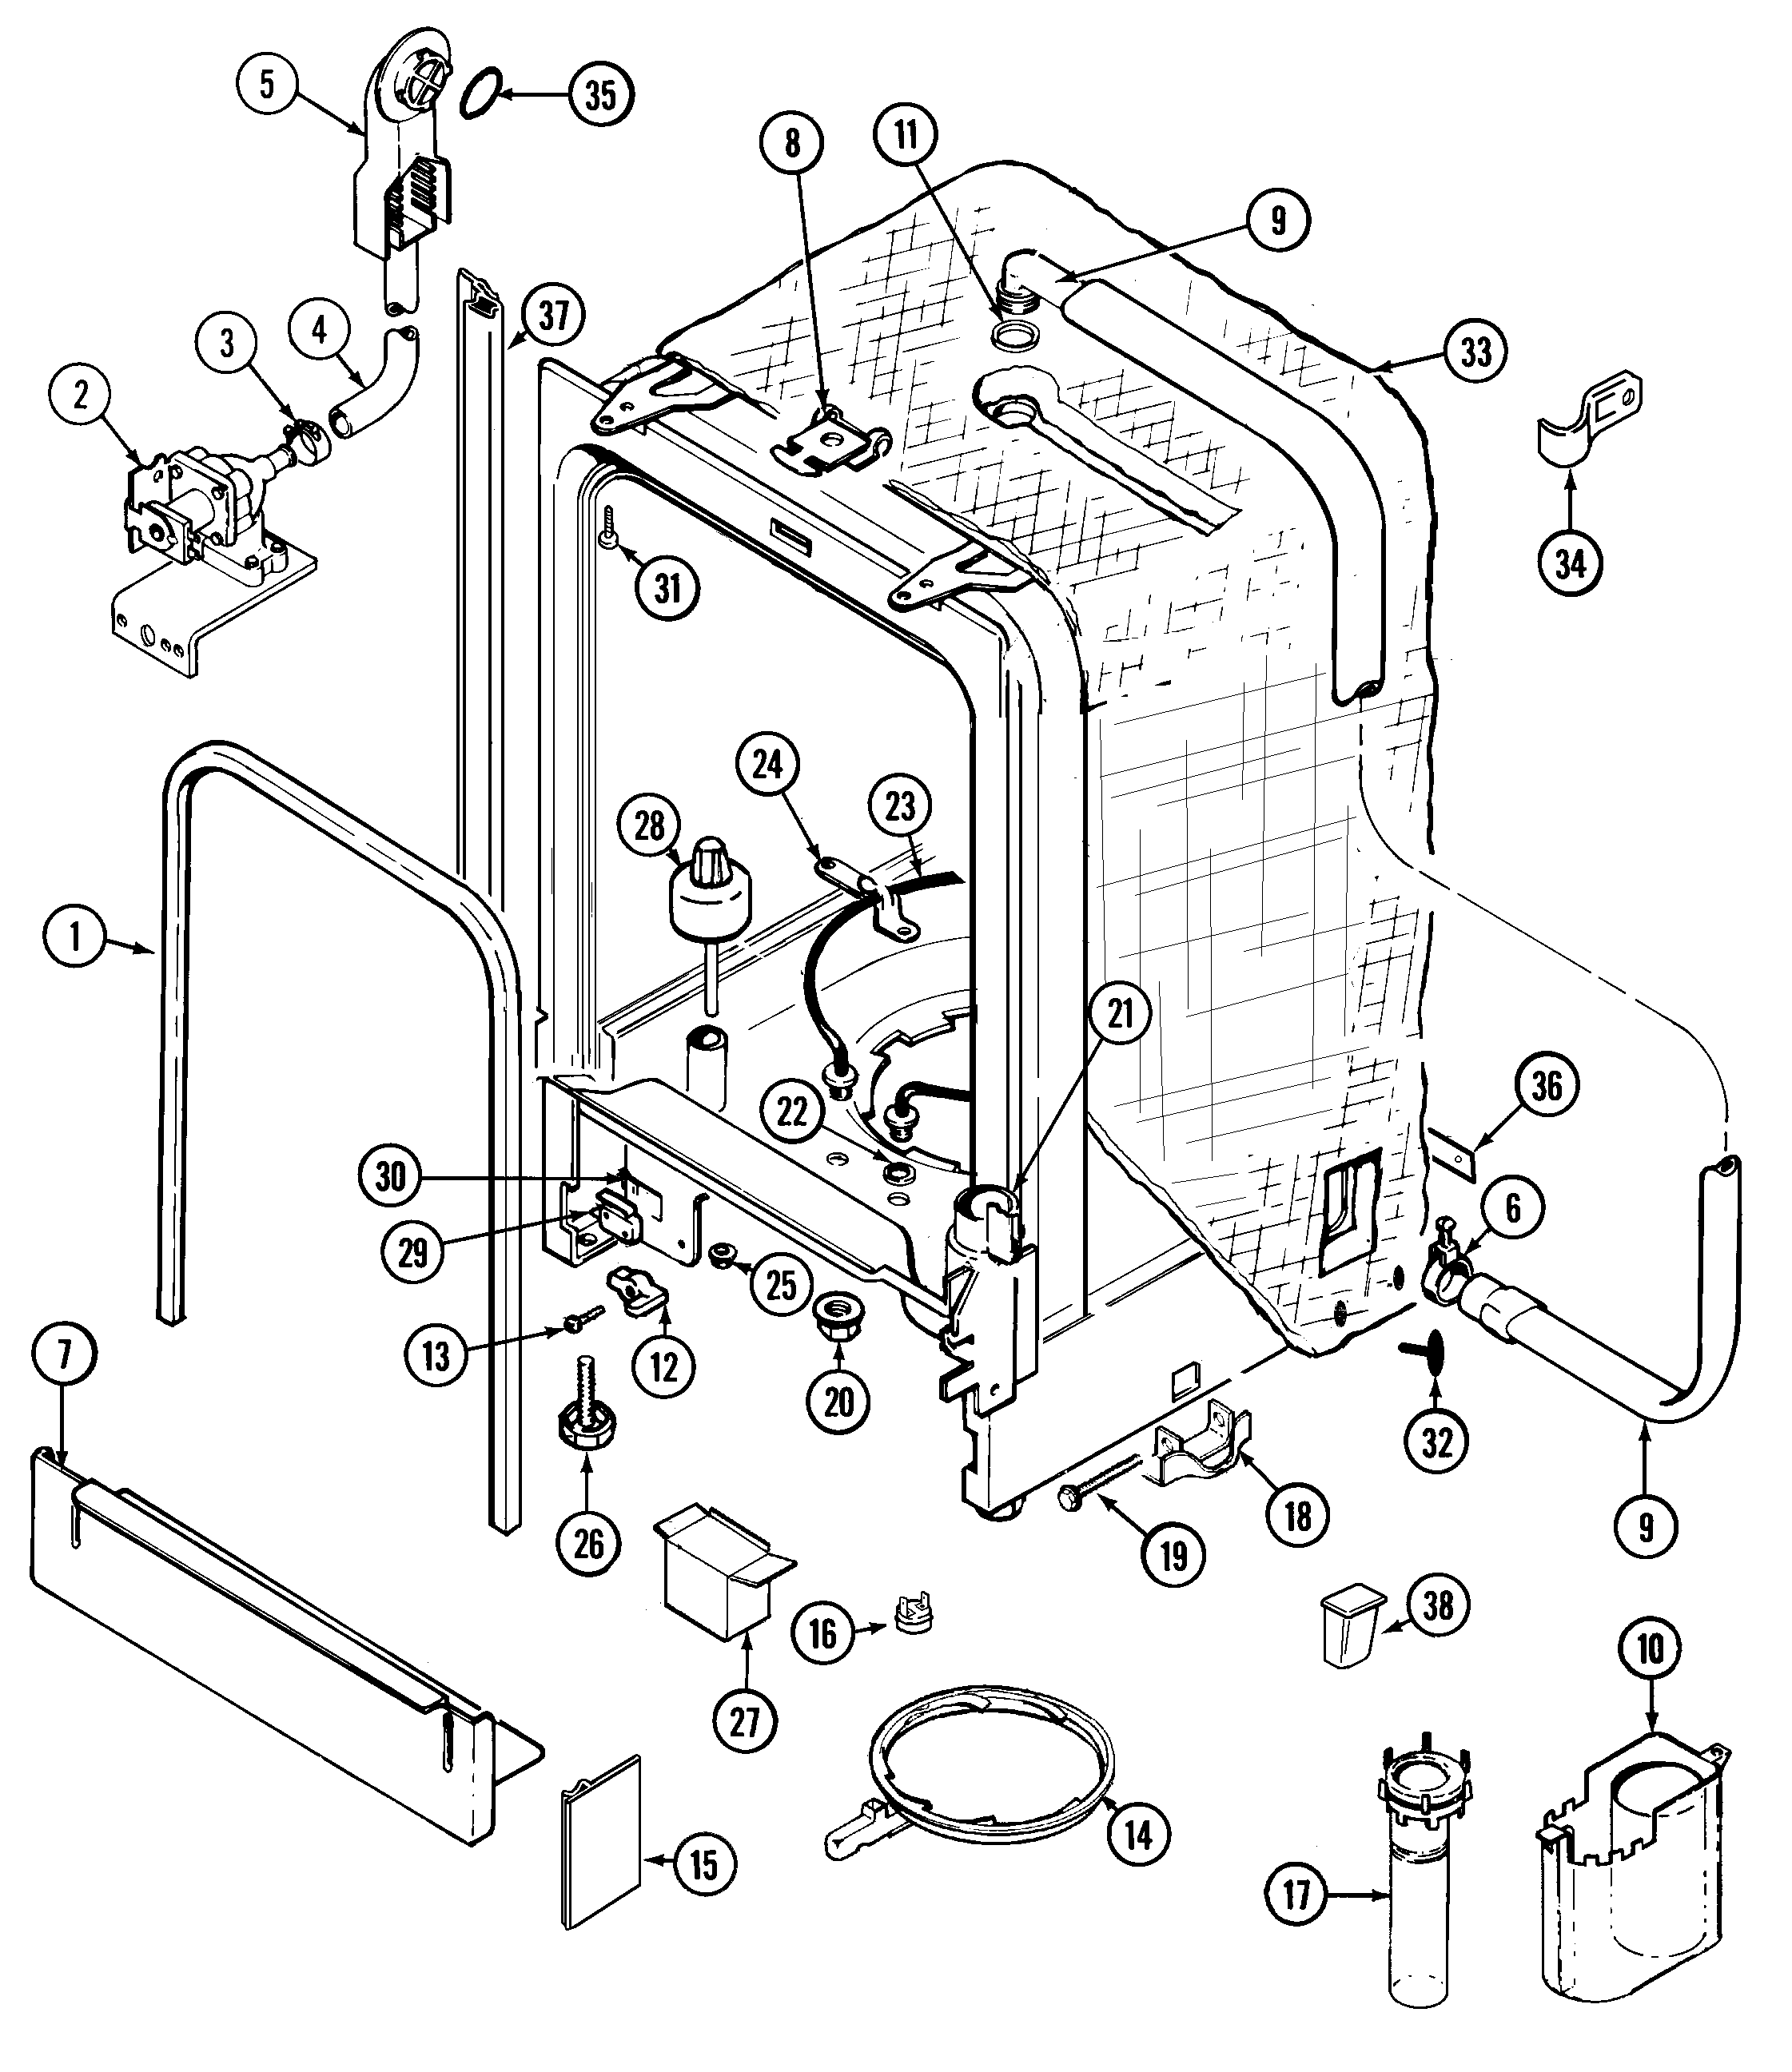 Dishwasher Drawing At Free For Personal Use Kenmore Elite Model 665 Wiring Diagram 371x450 Lamber Lamdwg03 F85 F92 Parts Manual Catering 2242x2593 Maytag Mdb6000awa Timer